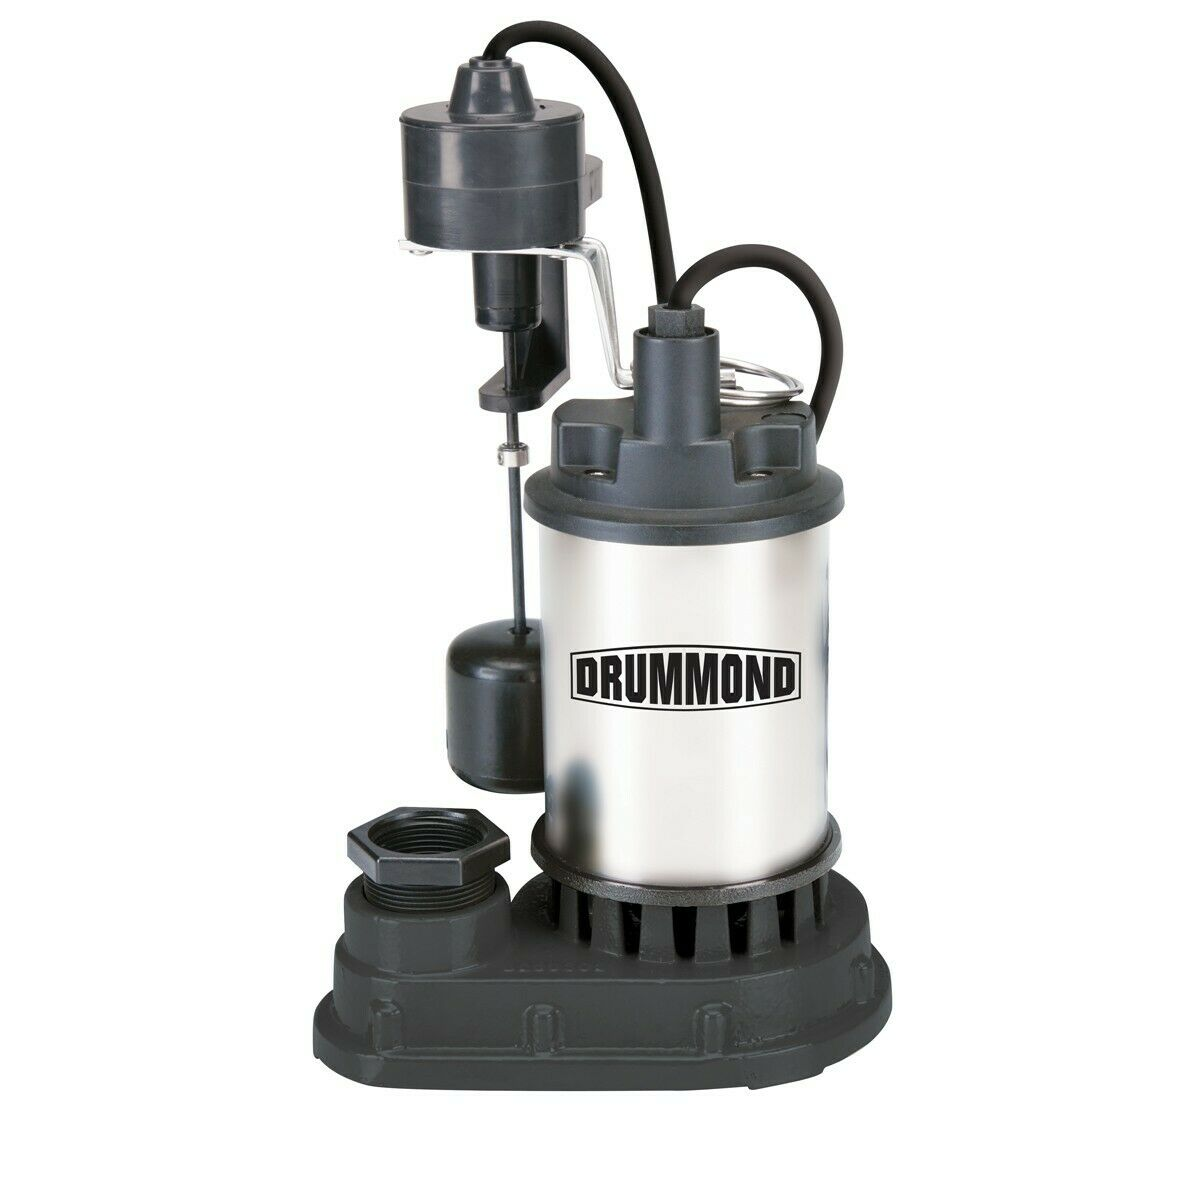 NEW DRUMMOND 1/3 HP Submersible Sump Pump With Heavy Duty Ve